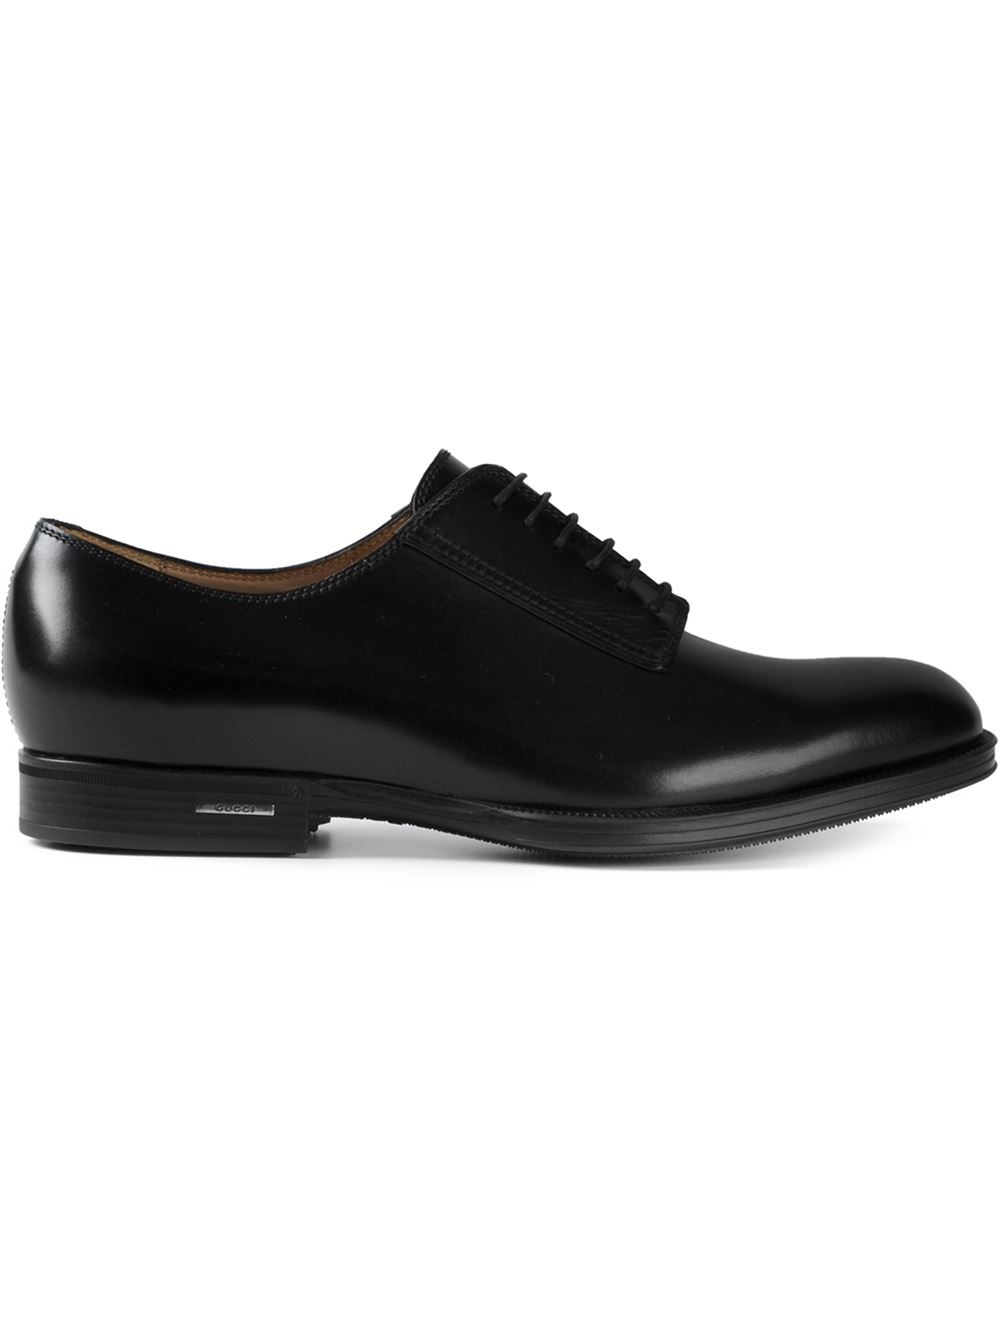 lyst gucci laceup shoes in black for men